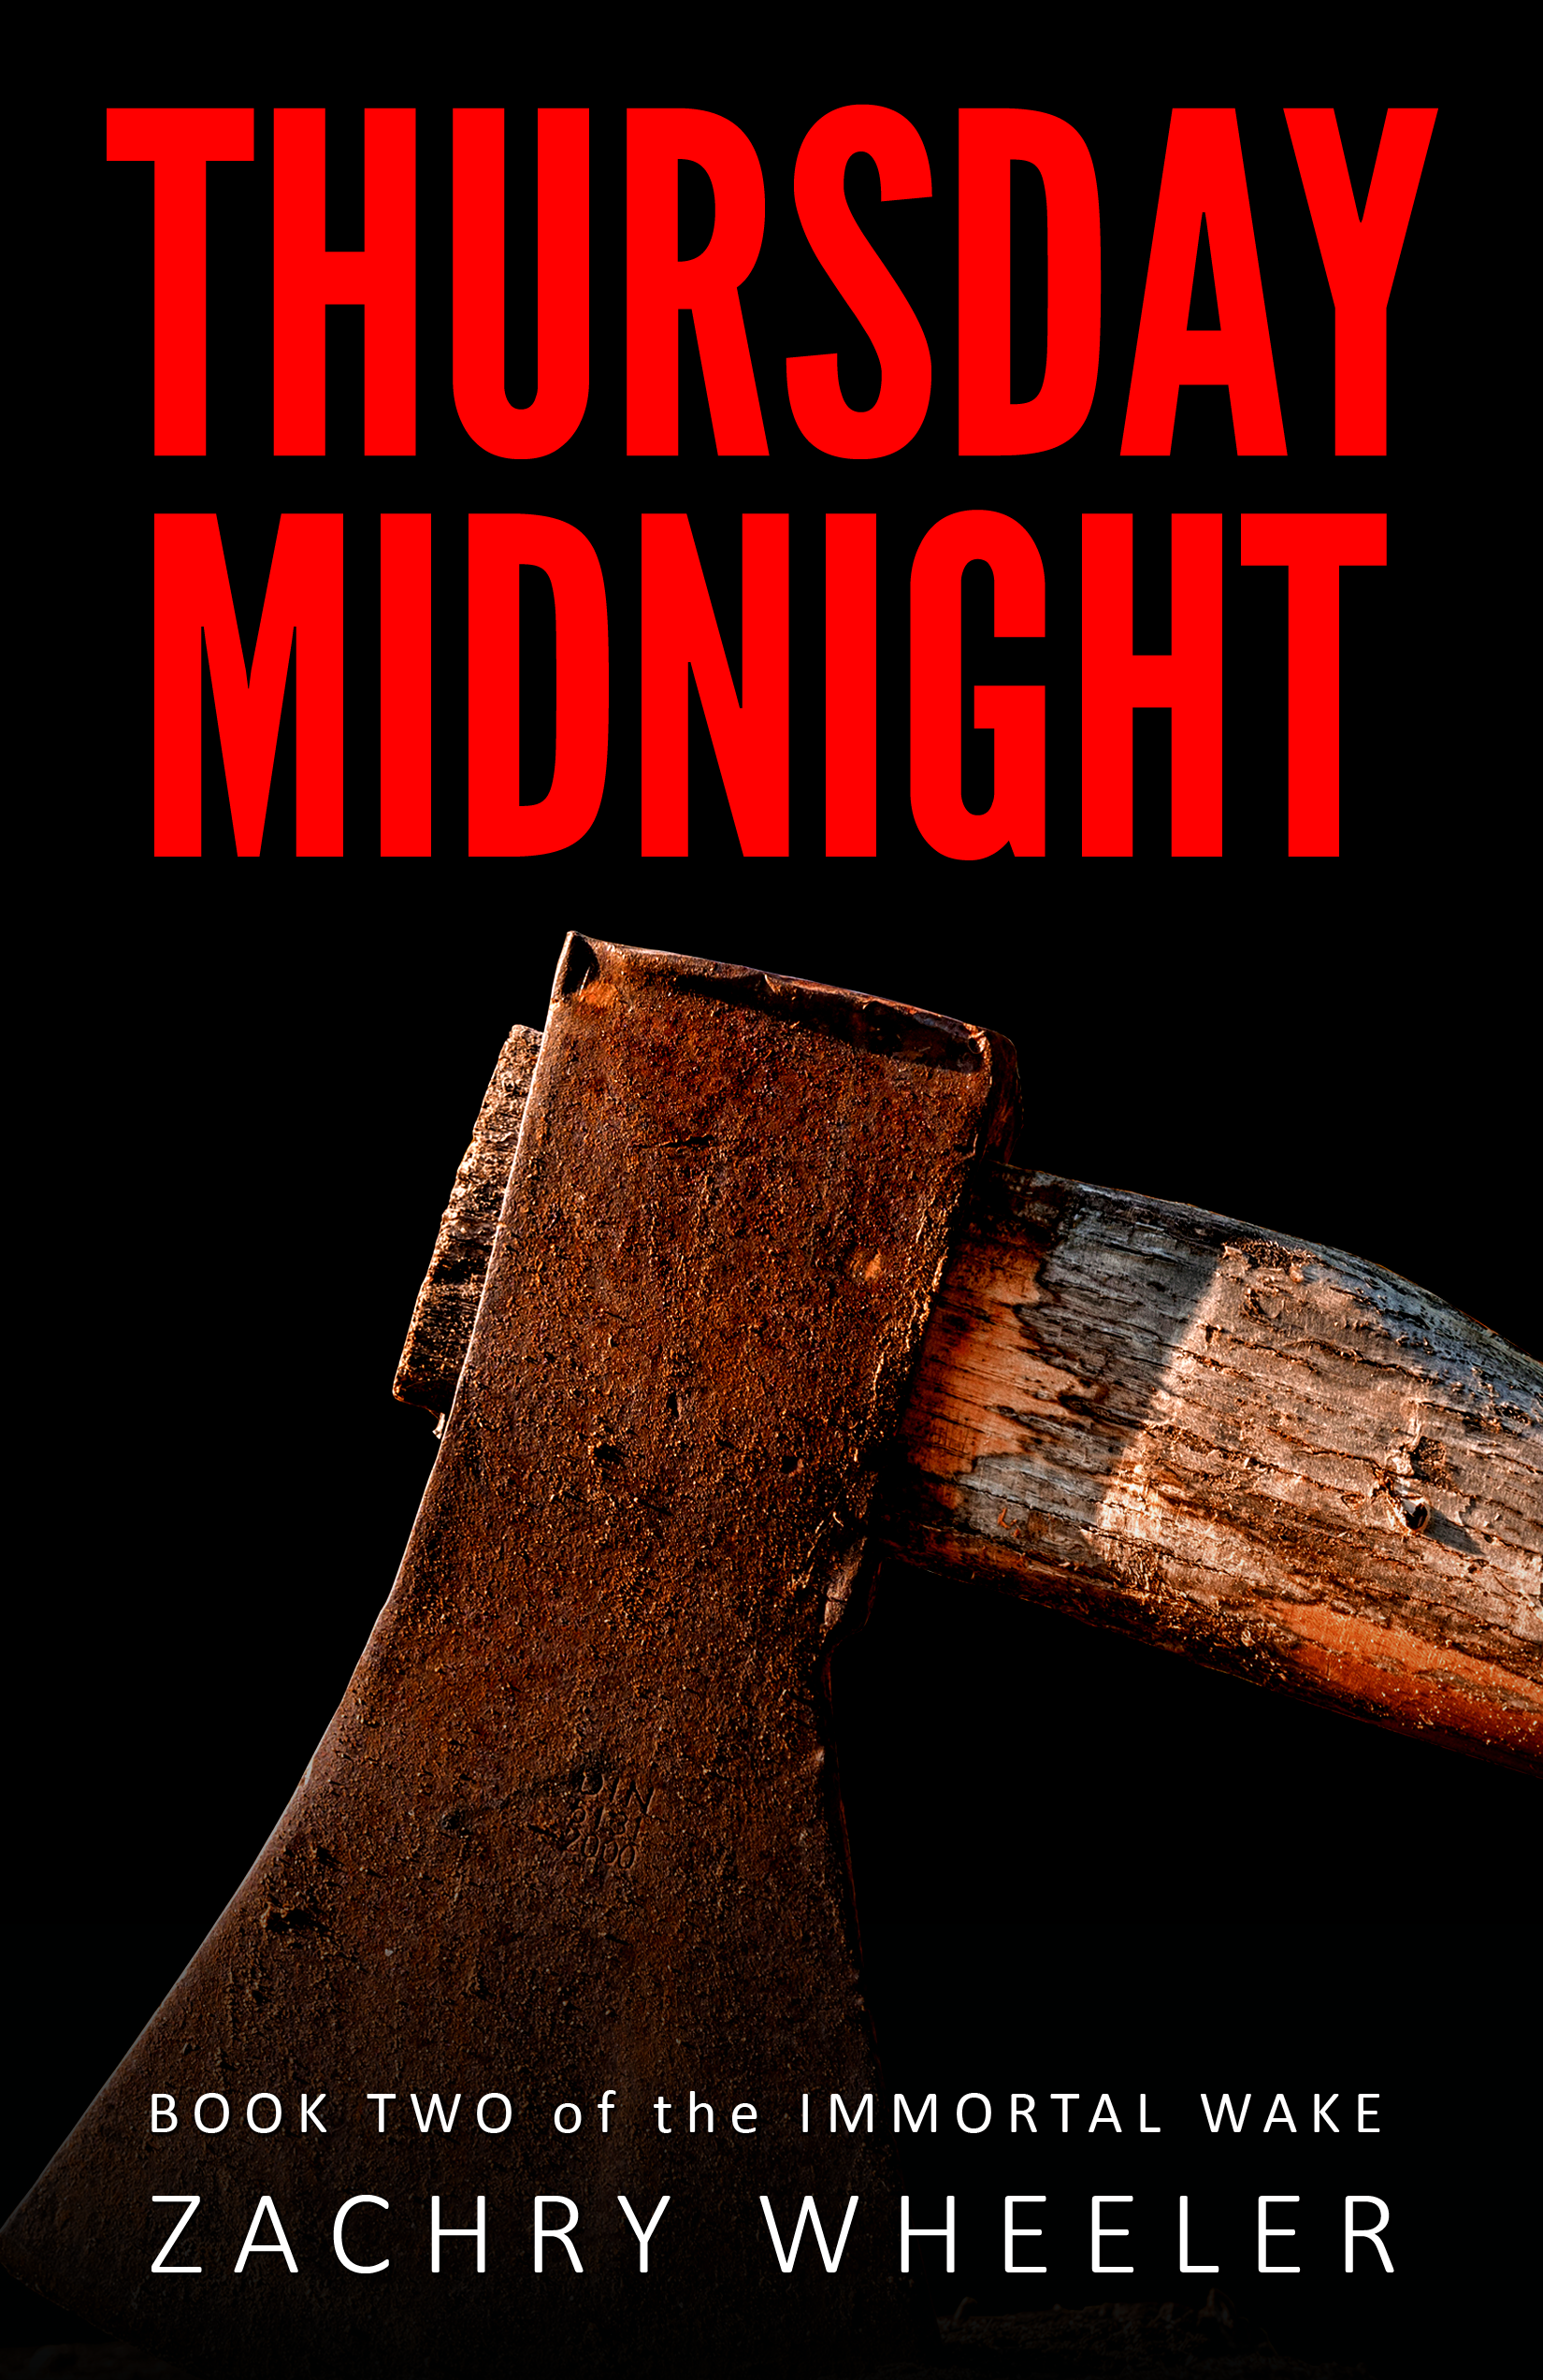 Thursday Midnight by Zachry Wheeler